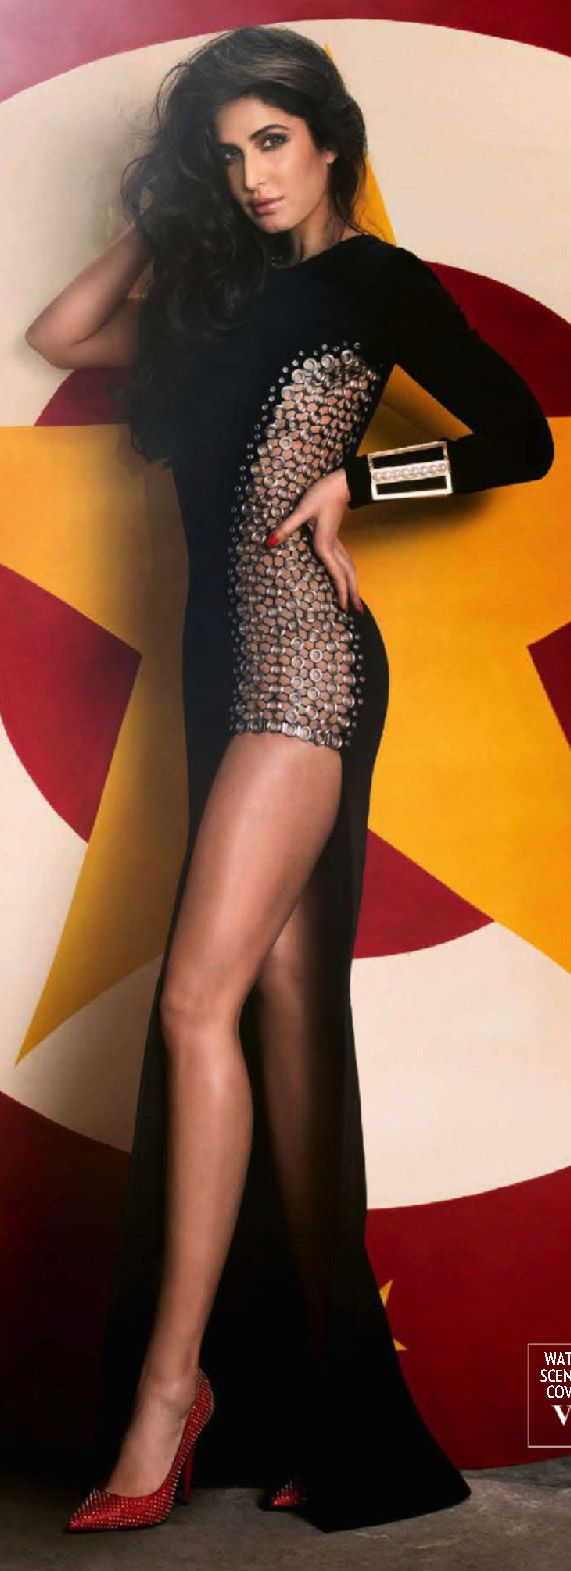 KATRINA KAIF VOGUE PHOTOSHOOT | Liked by - http://www.chinasalessite.com – Wholesale Women's Clothes,Online Catalog,Ladies Clothing,Wholesale Women's Wear & Accessories. LOWEST PRICES ONLINE @ http://s.click.aliexpress.com/e/UvvFQ3zn2.